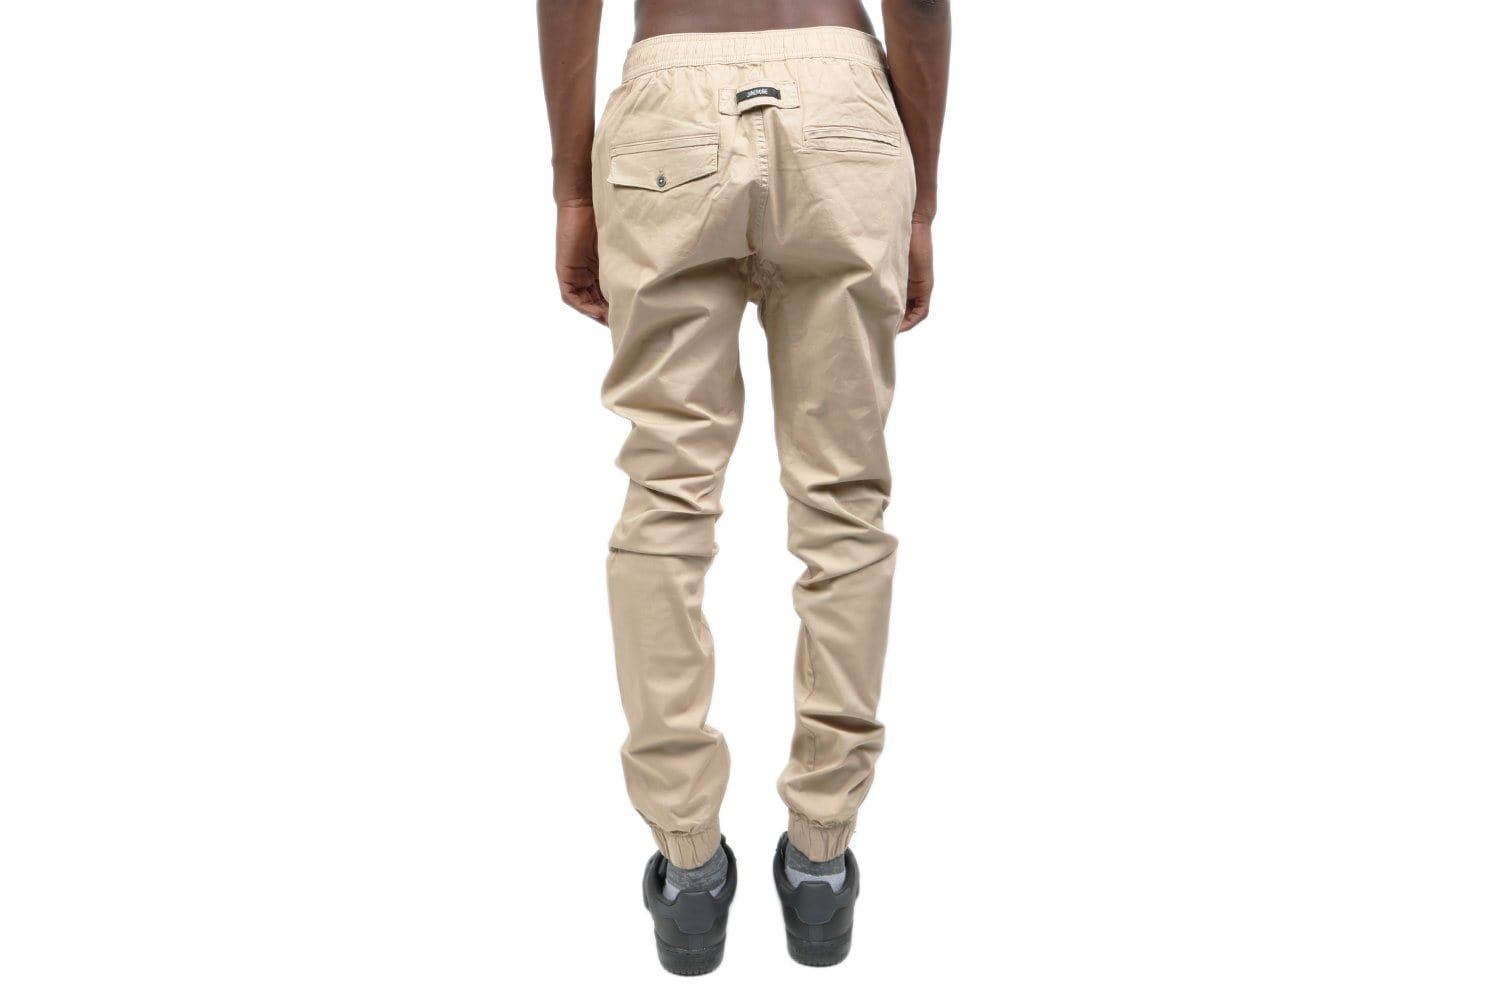 SURESHOT LIGHTWEIGHT JOGGER MENS SOFTGOODS ZANEROBE